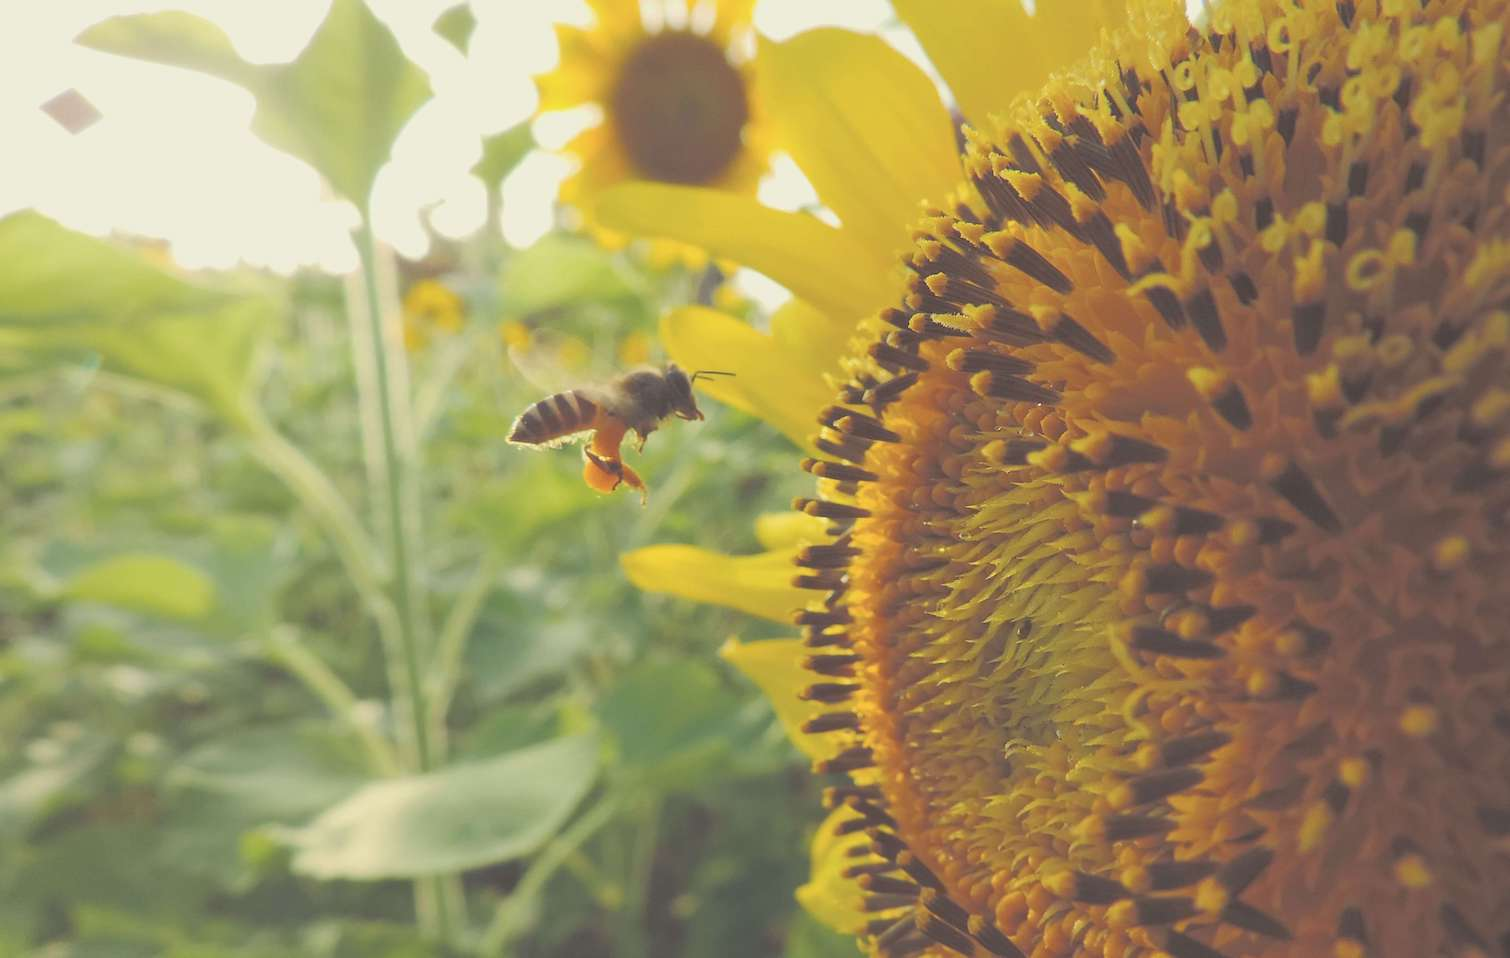 EU Bans Insecticides Linked to Honeybee Decline